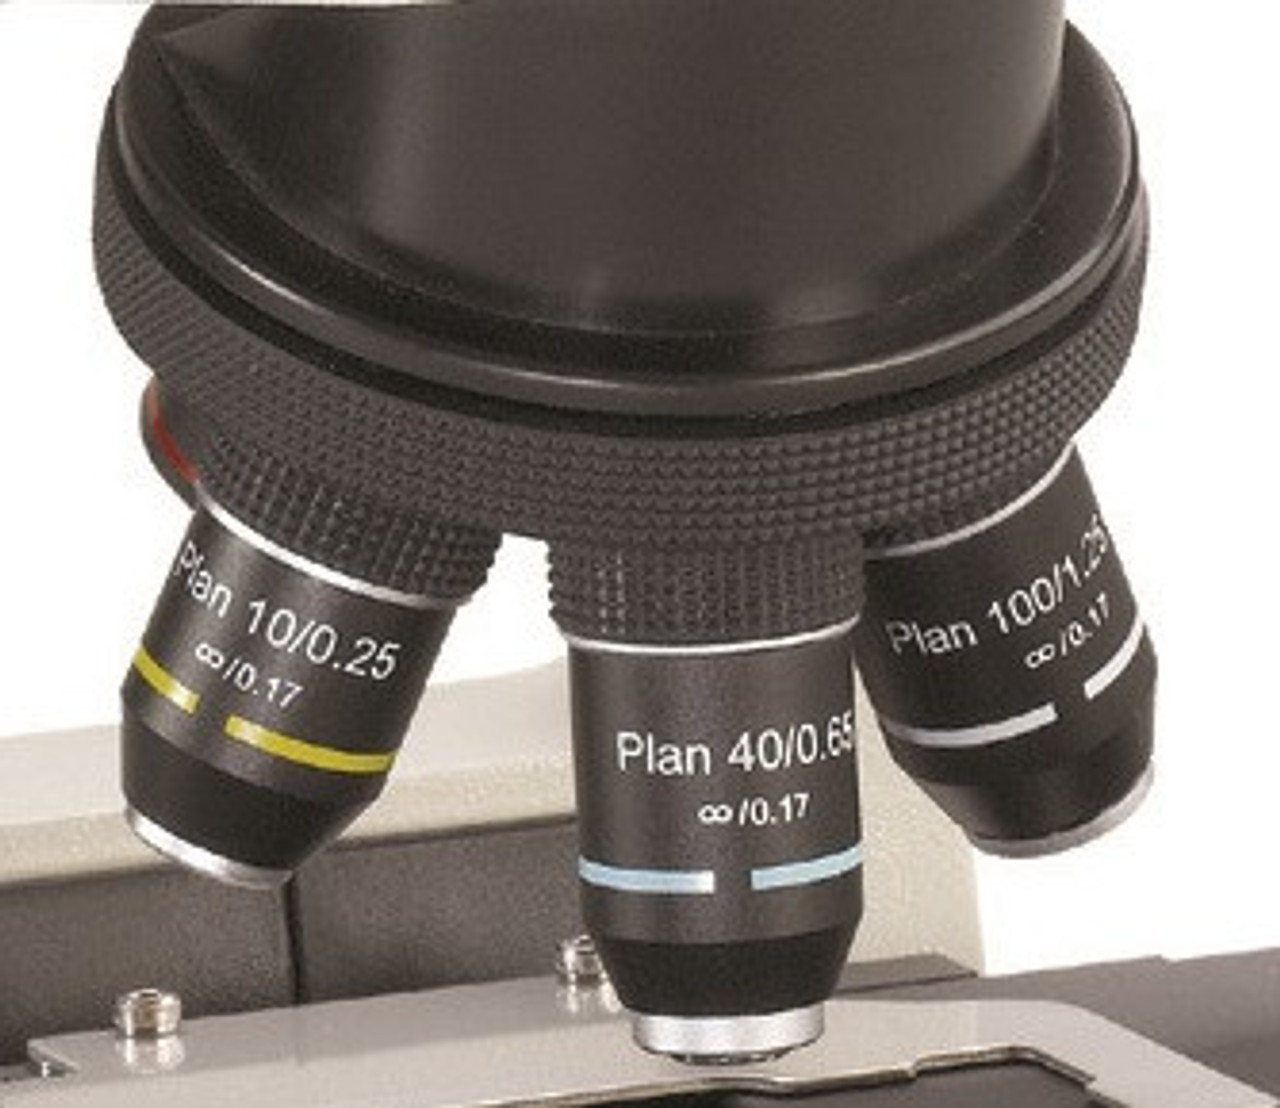 Accu-Scope Plan Objectives For 3012 / 3013 Microscope Series